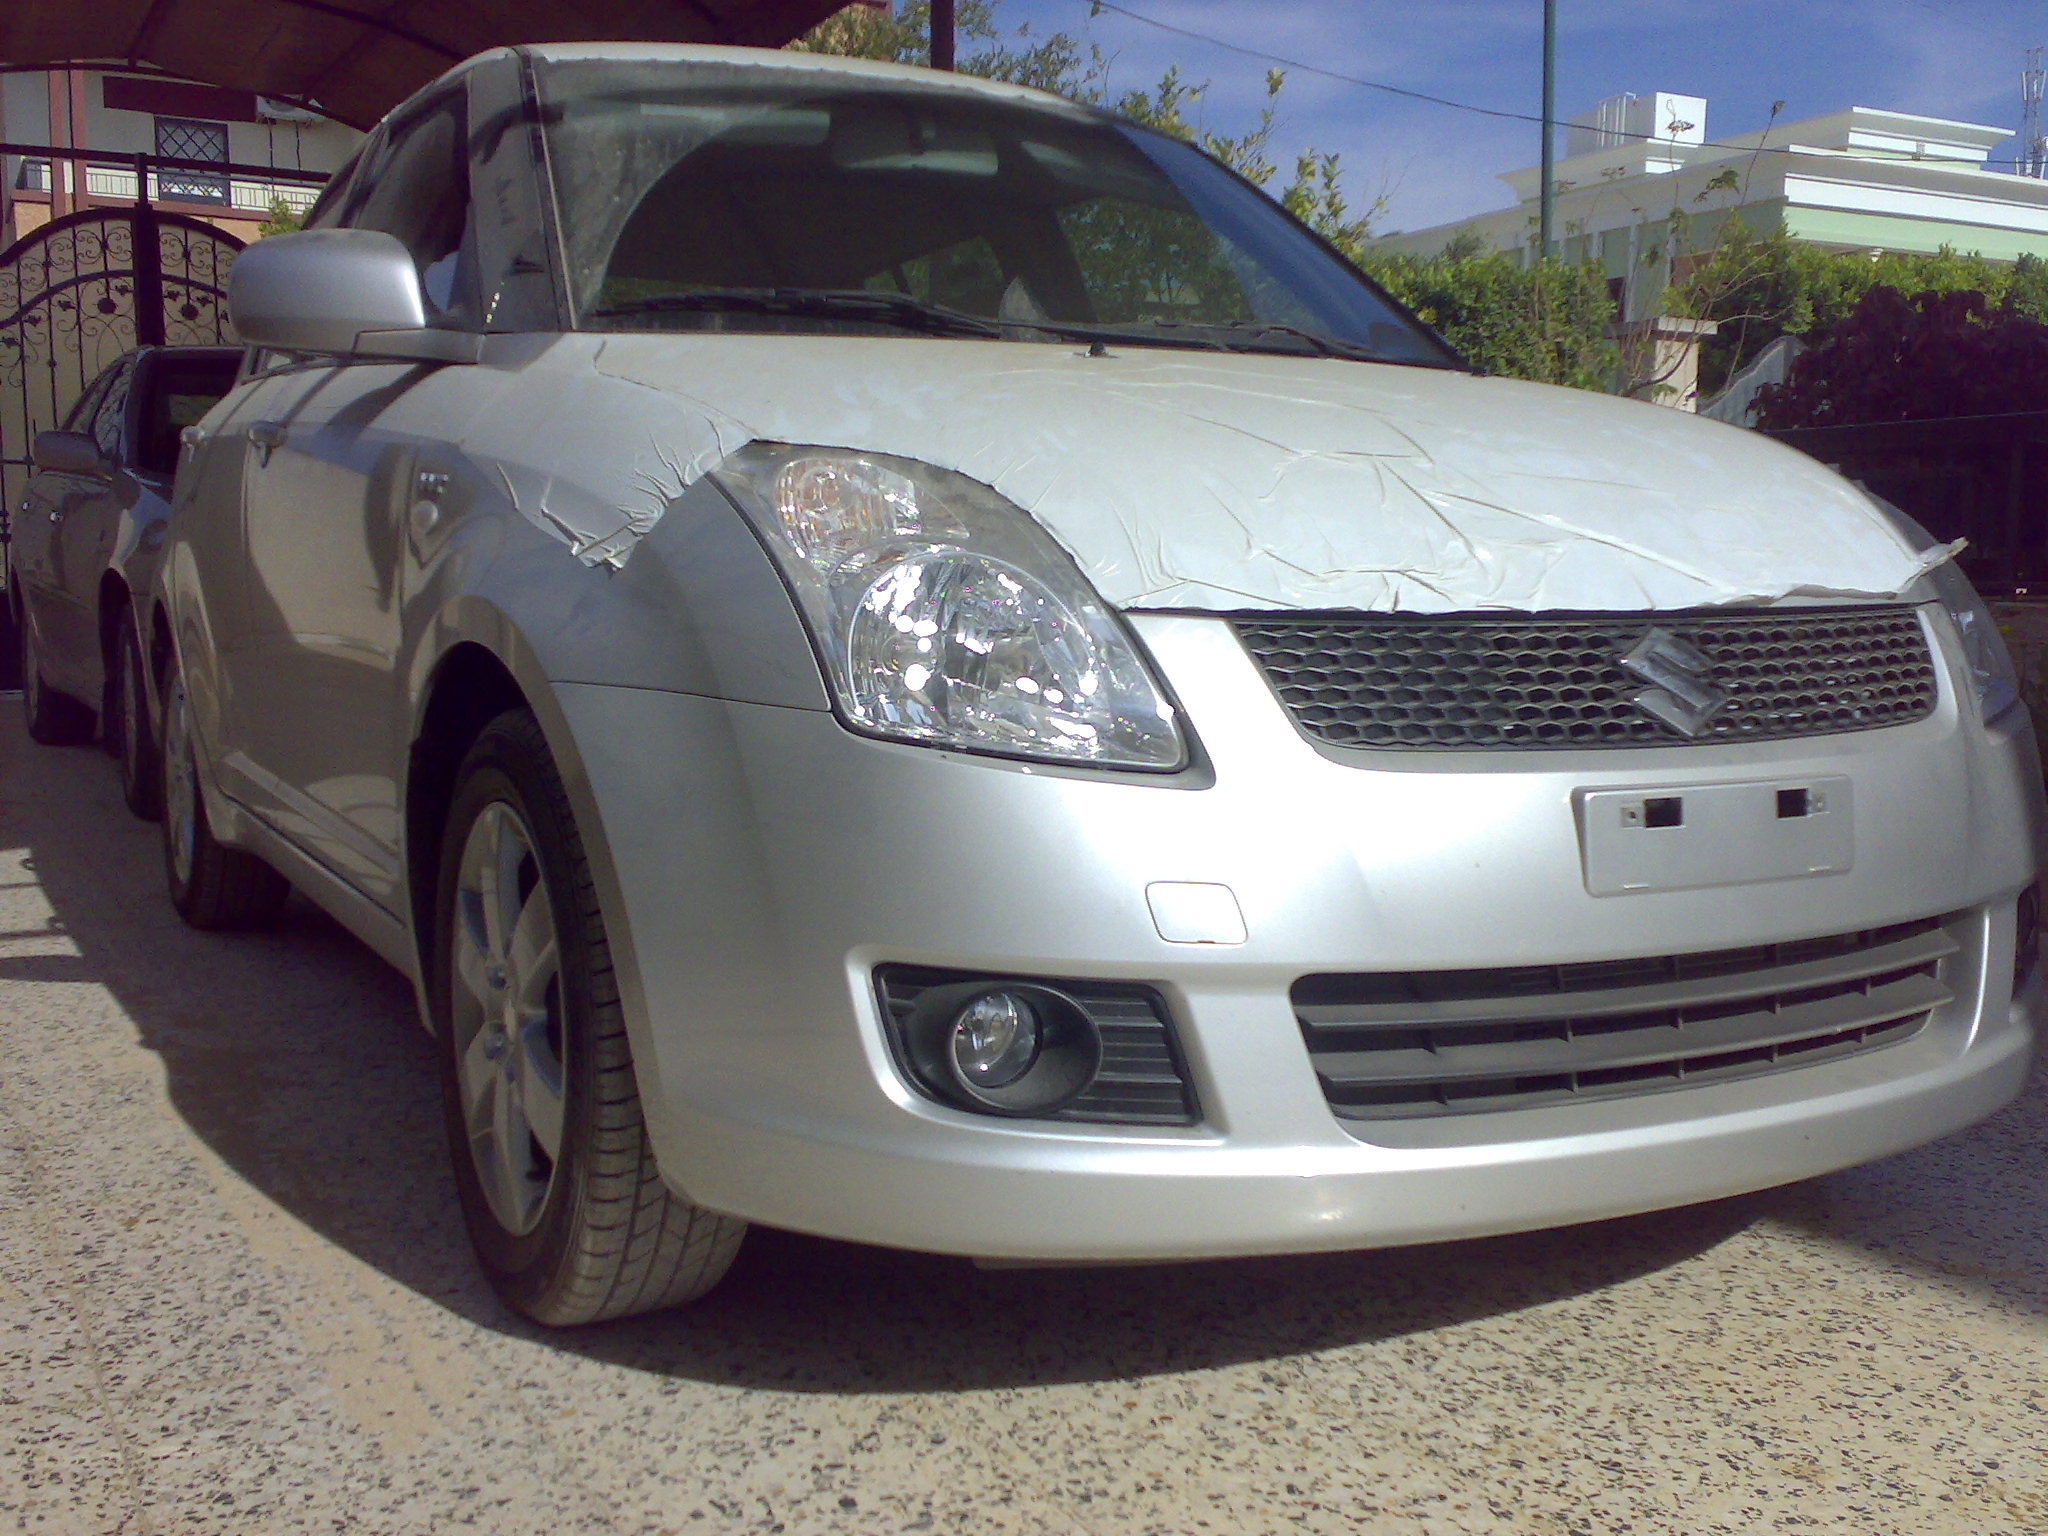 sportevo2513 2007 Suzuki Swift 15240925